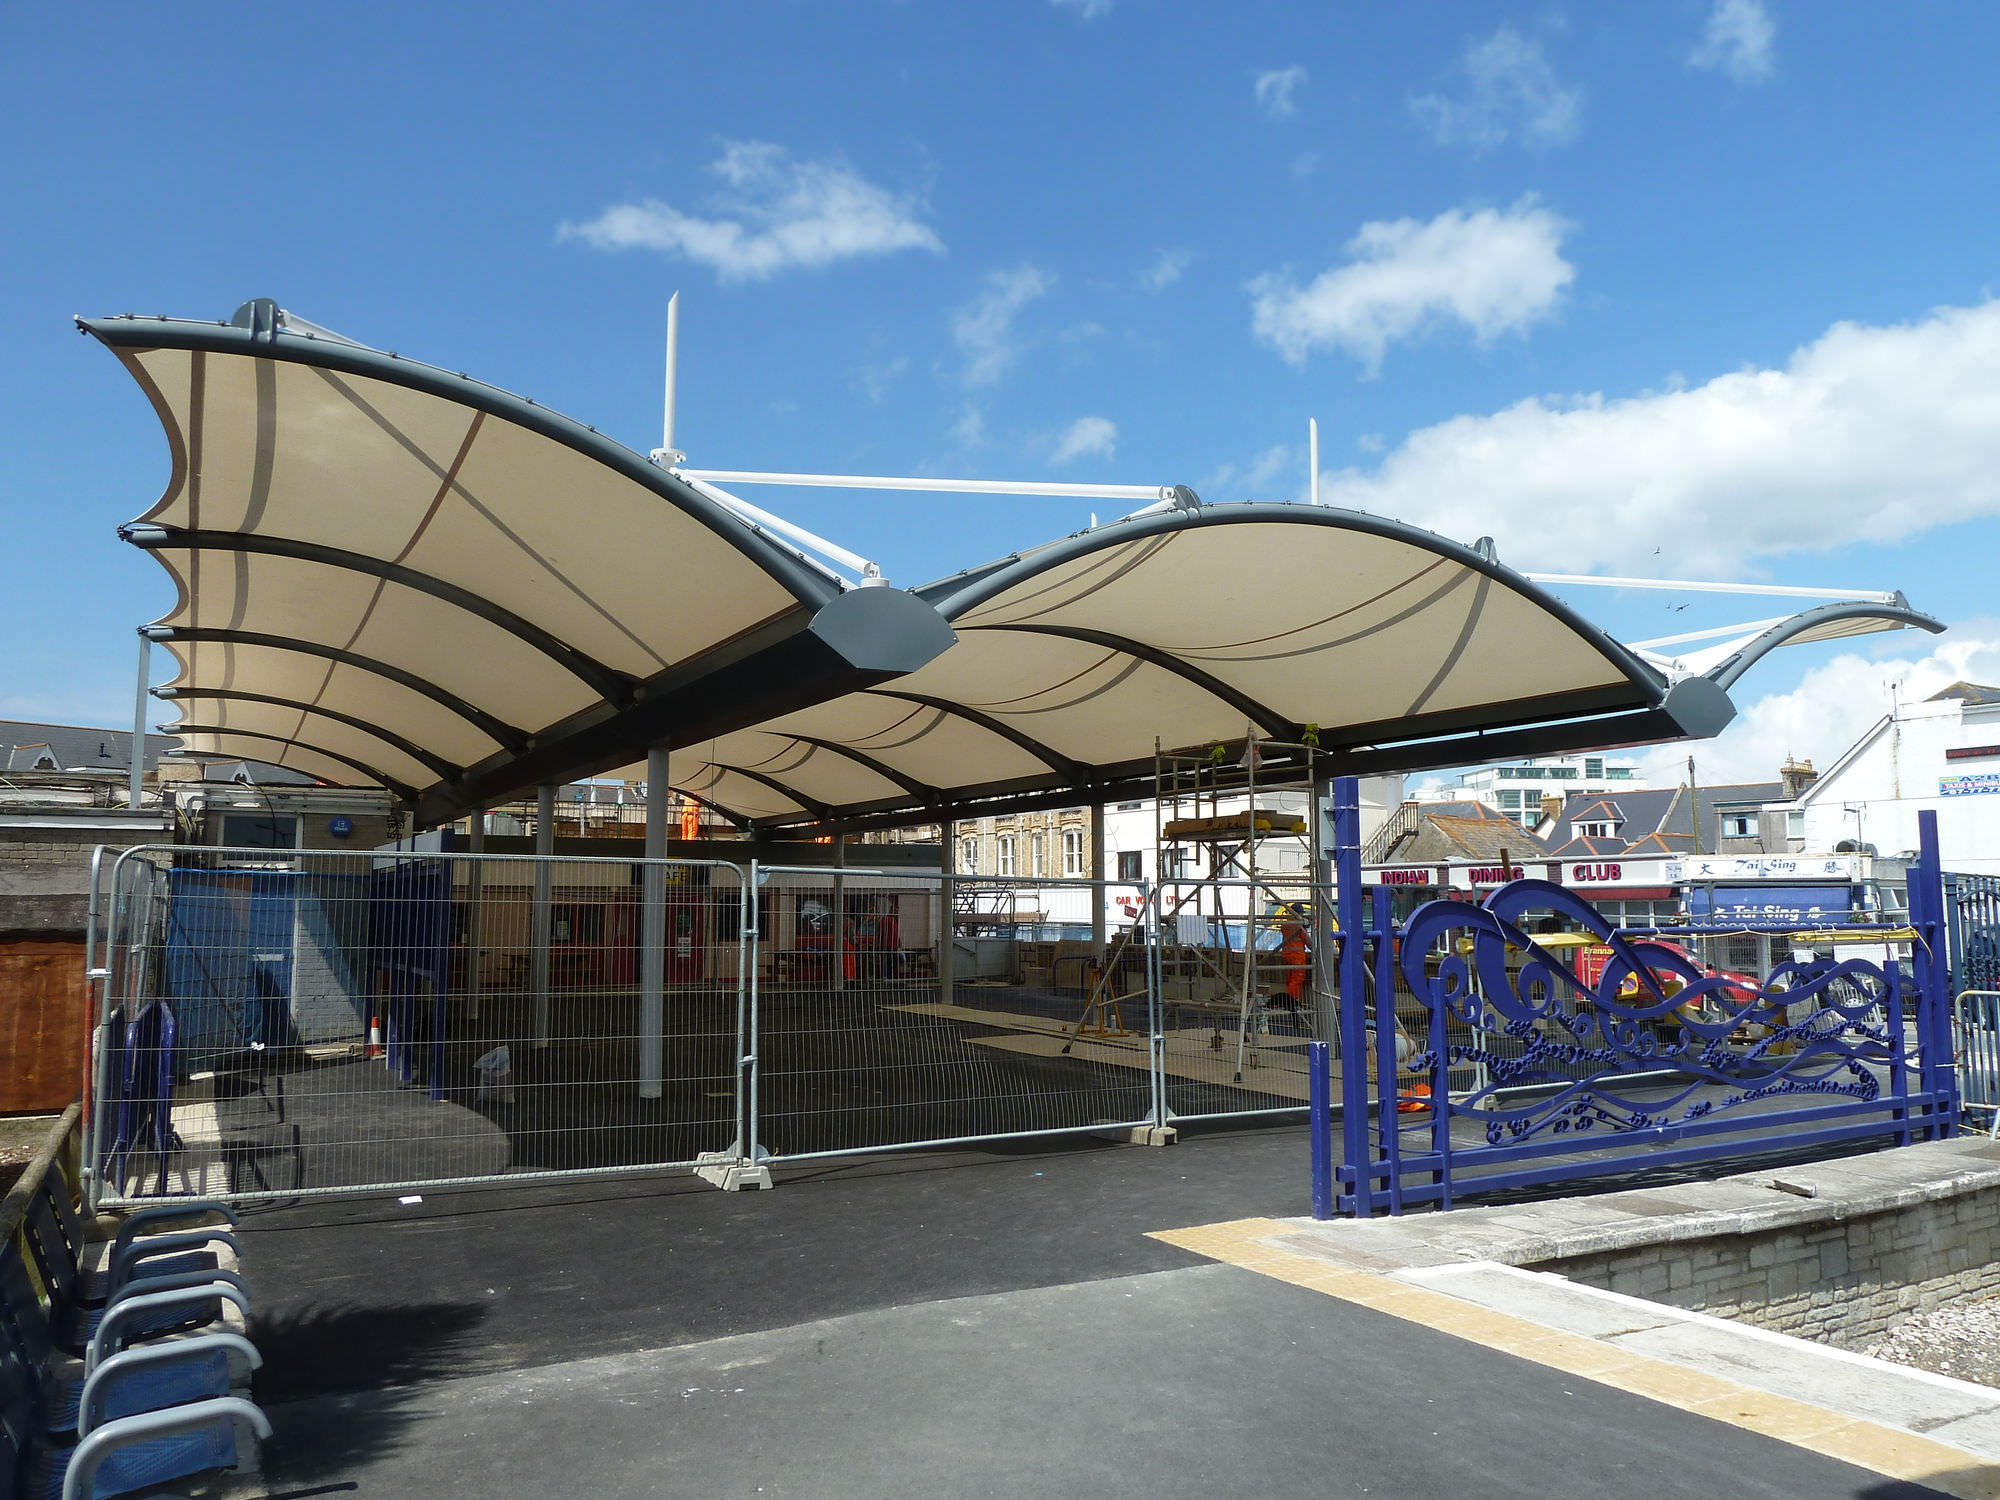 Tensile canopy / metal frame supported / for public spaces / with glass fiber cone - NEWQUAY : tensile canopy structures - memphite.com